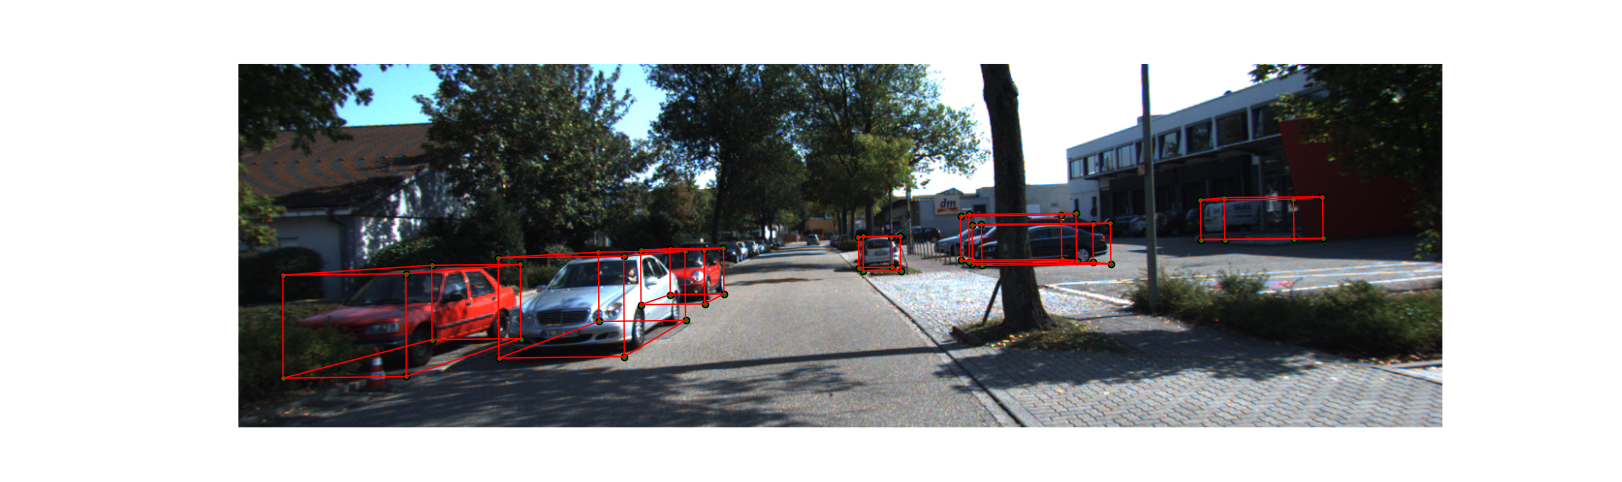 Vehicle detection using LIDAR: EDA, augmentation and feature